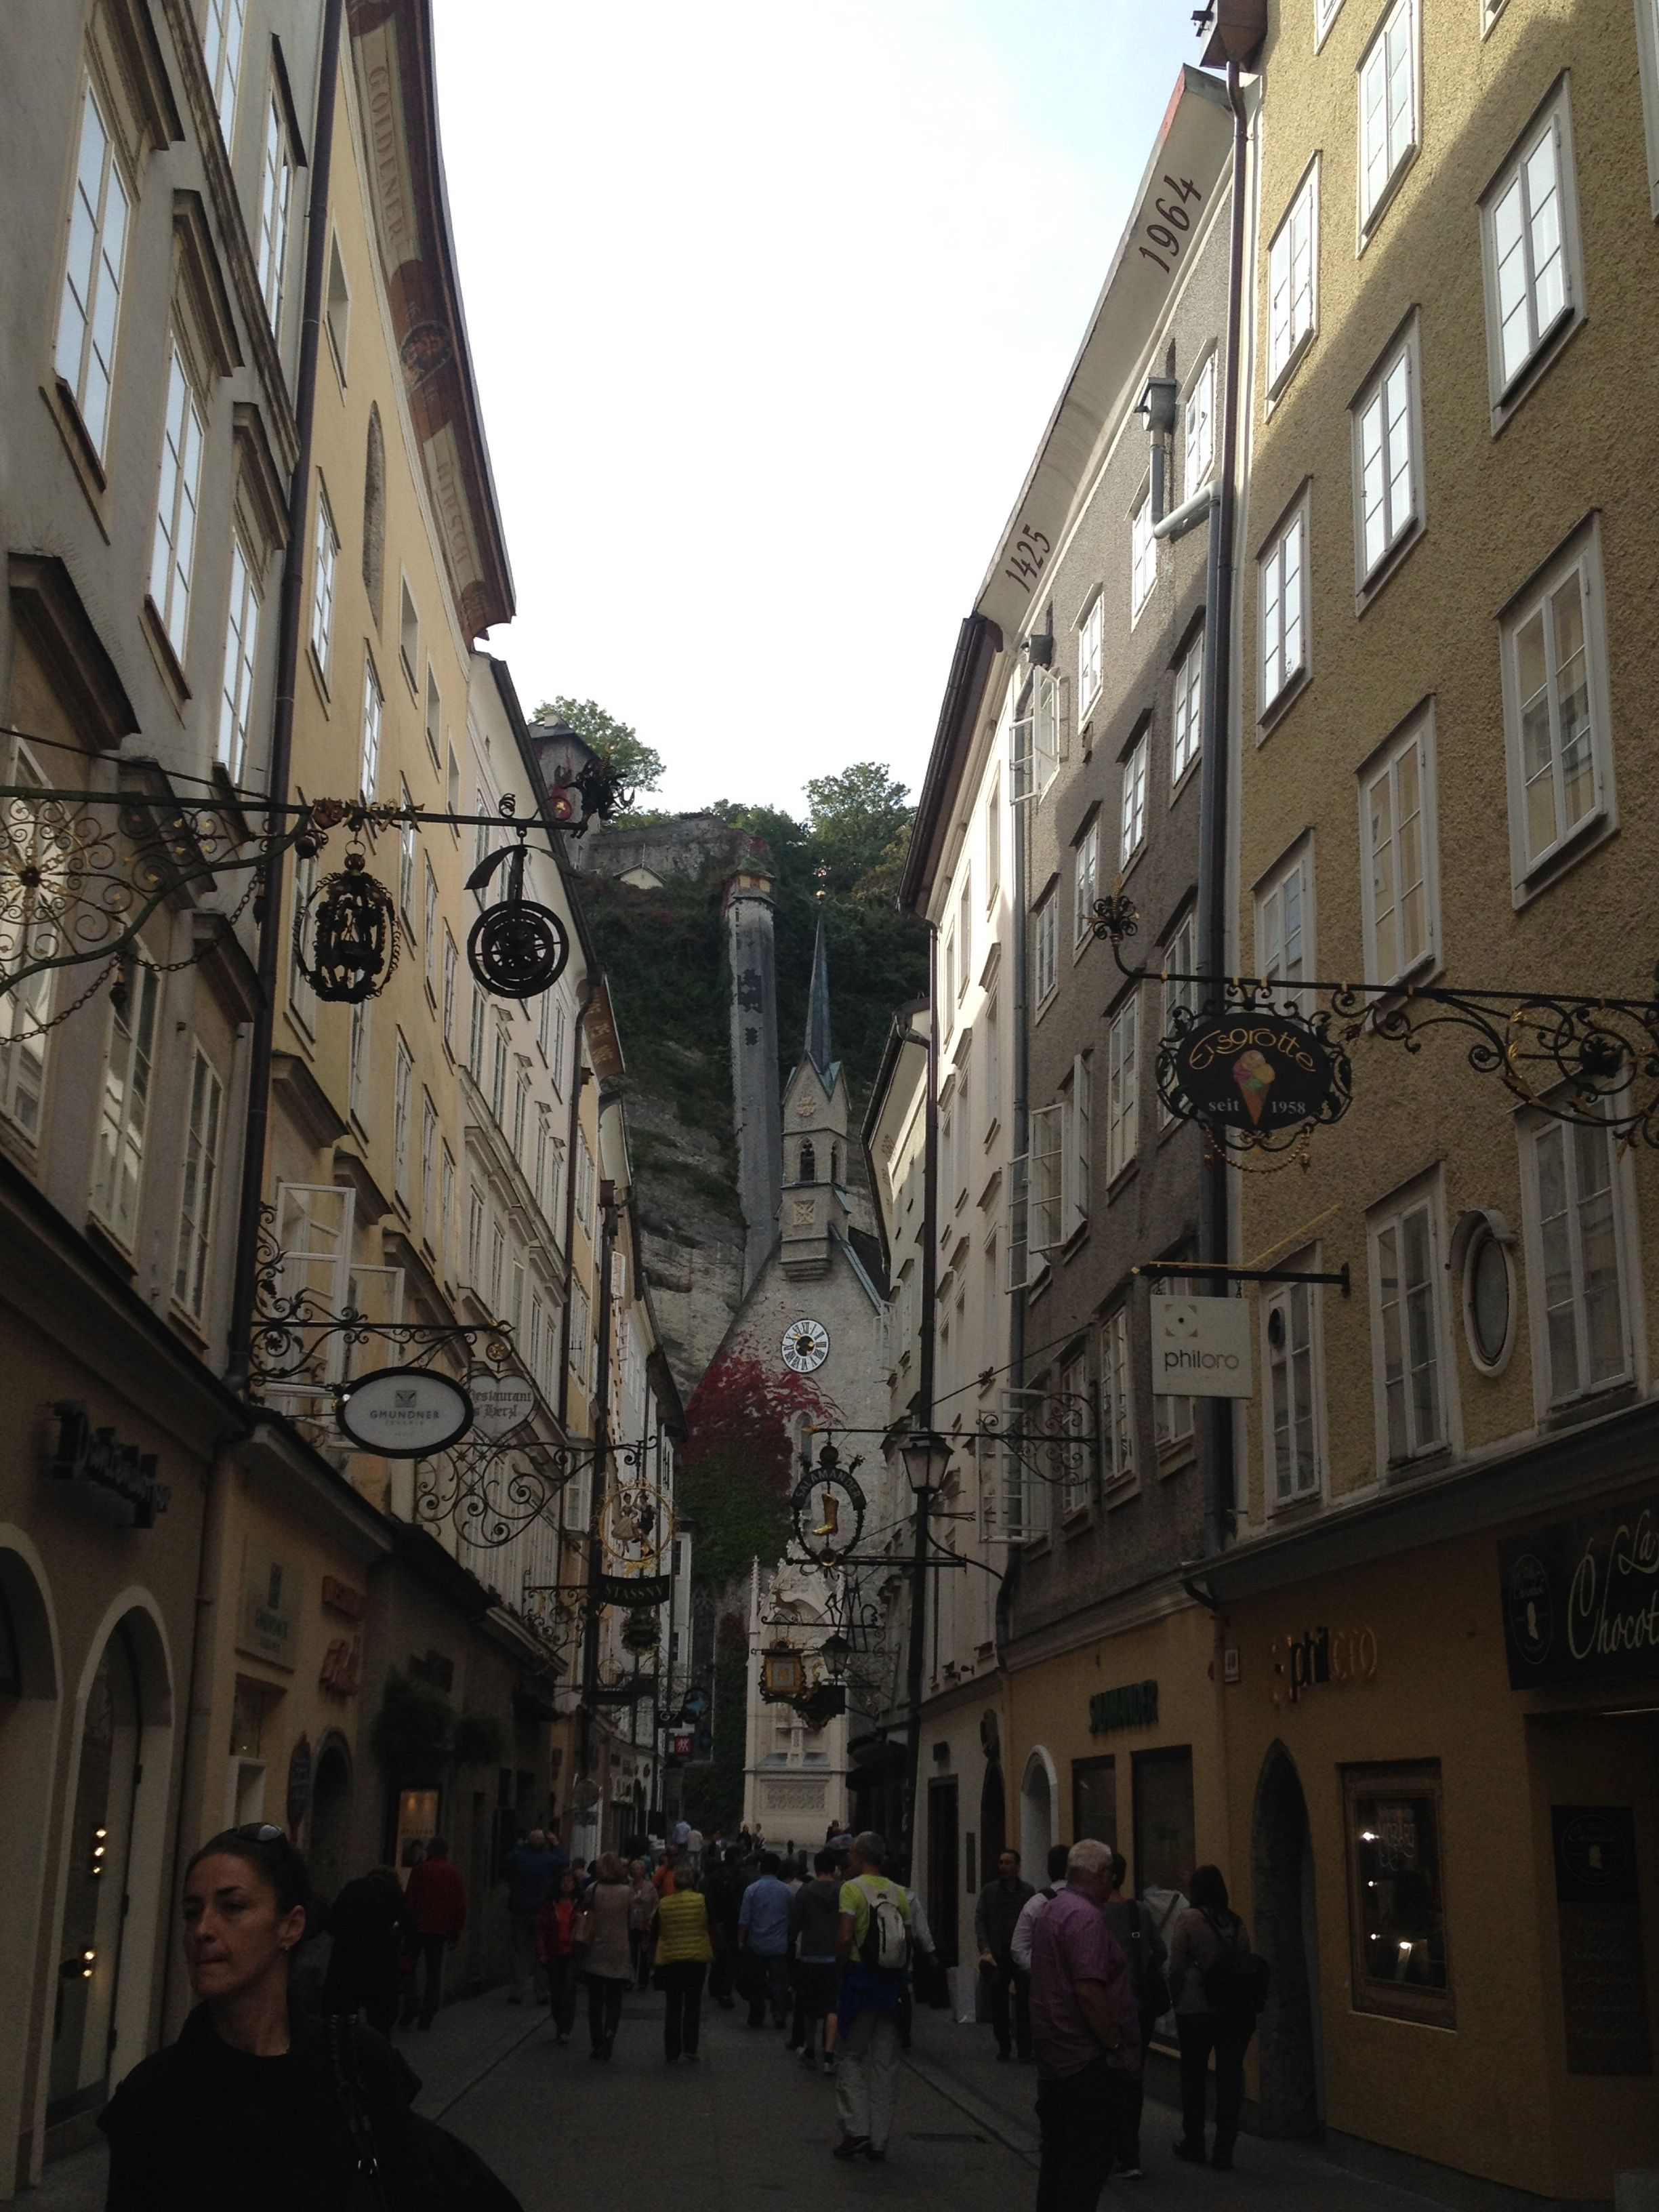 The back door of the hotel opens to a small alley that leads to the Getreidegasse alley, a famous shopping area.